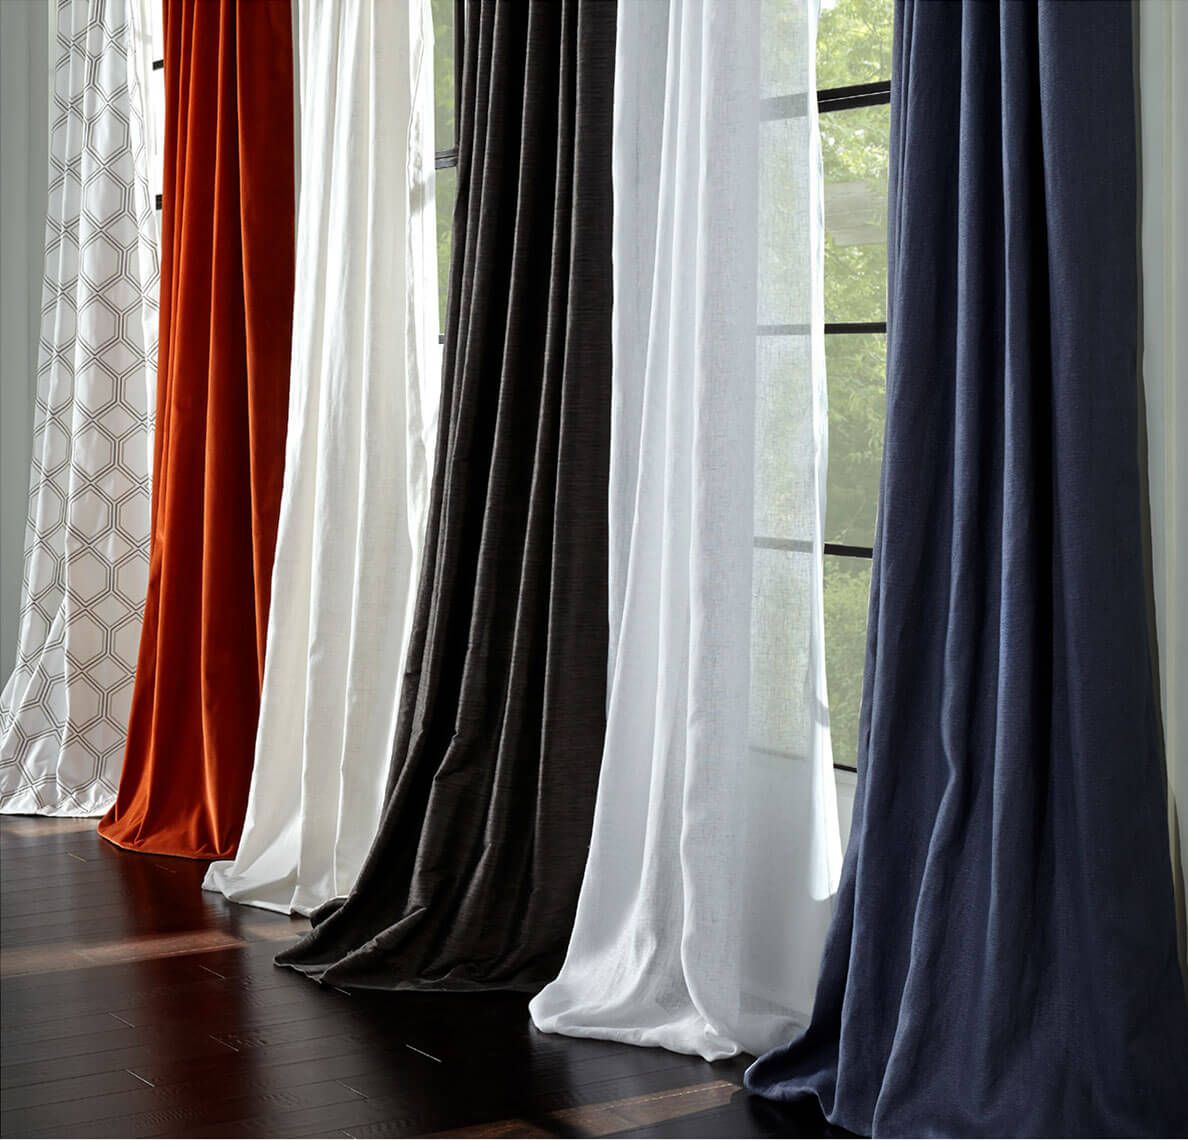 Our various drapery collection options